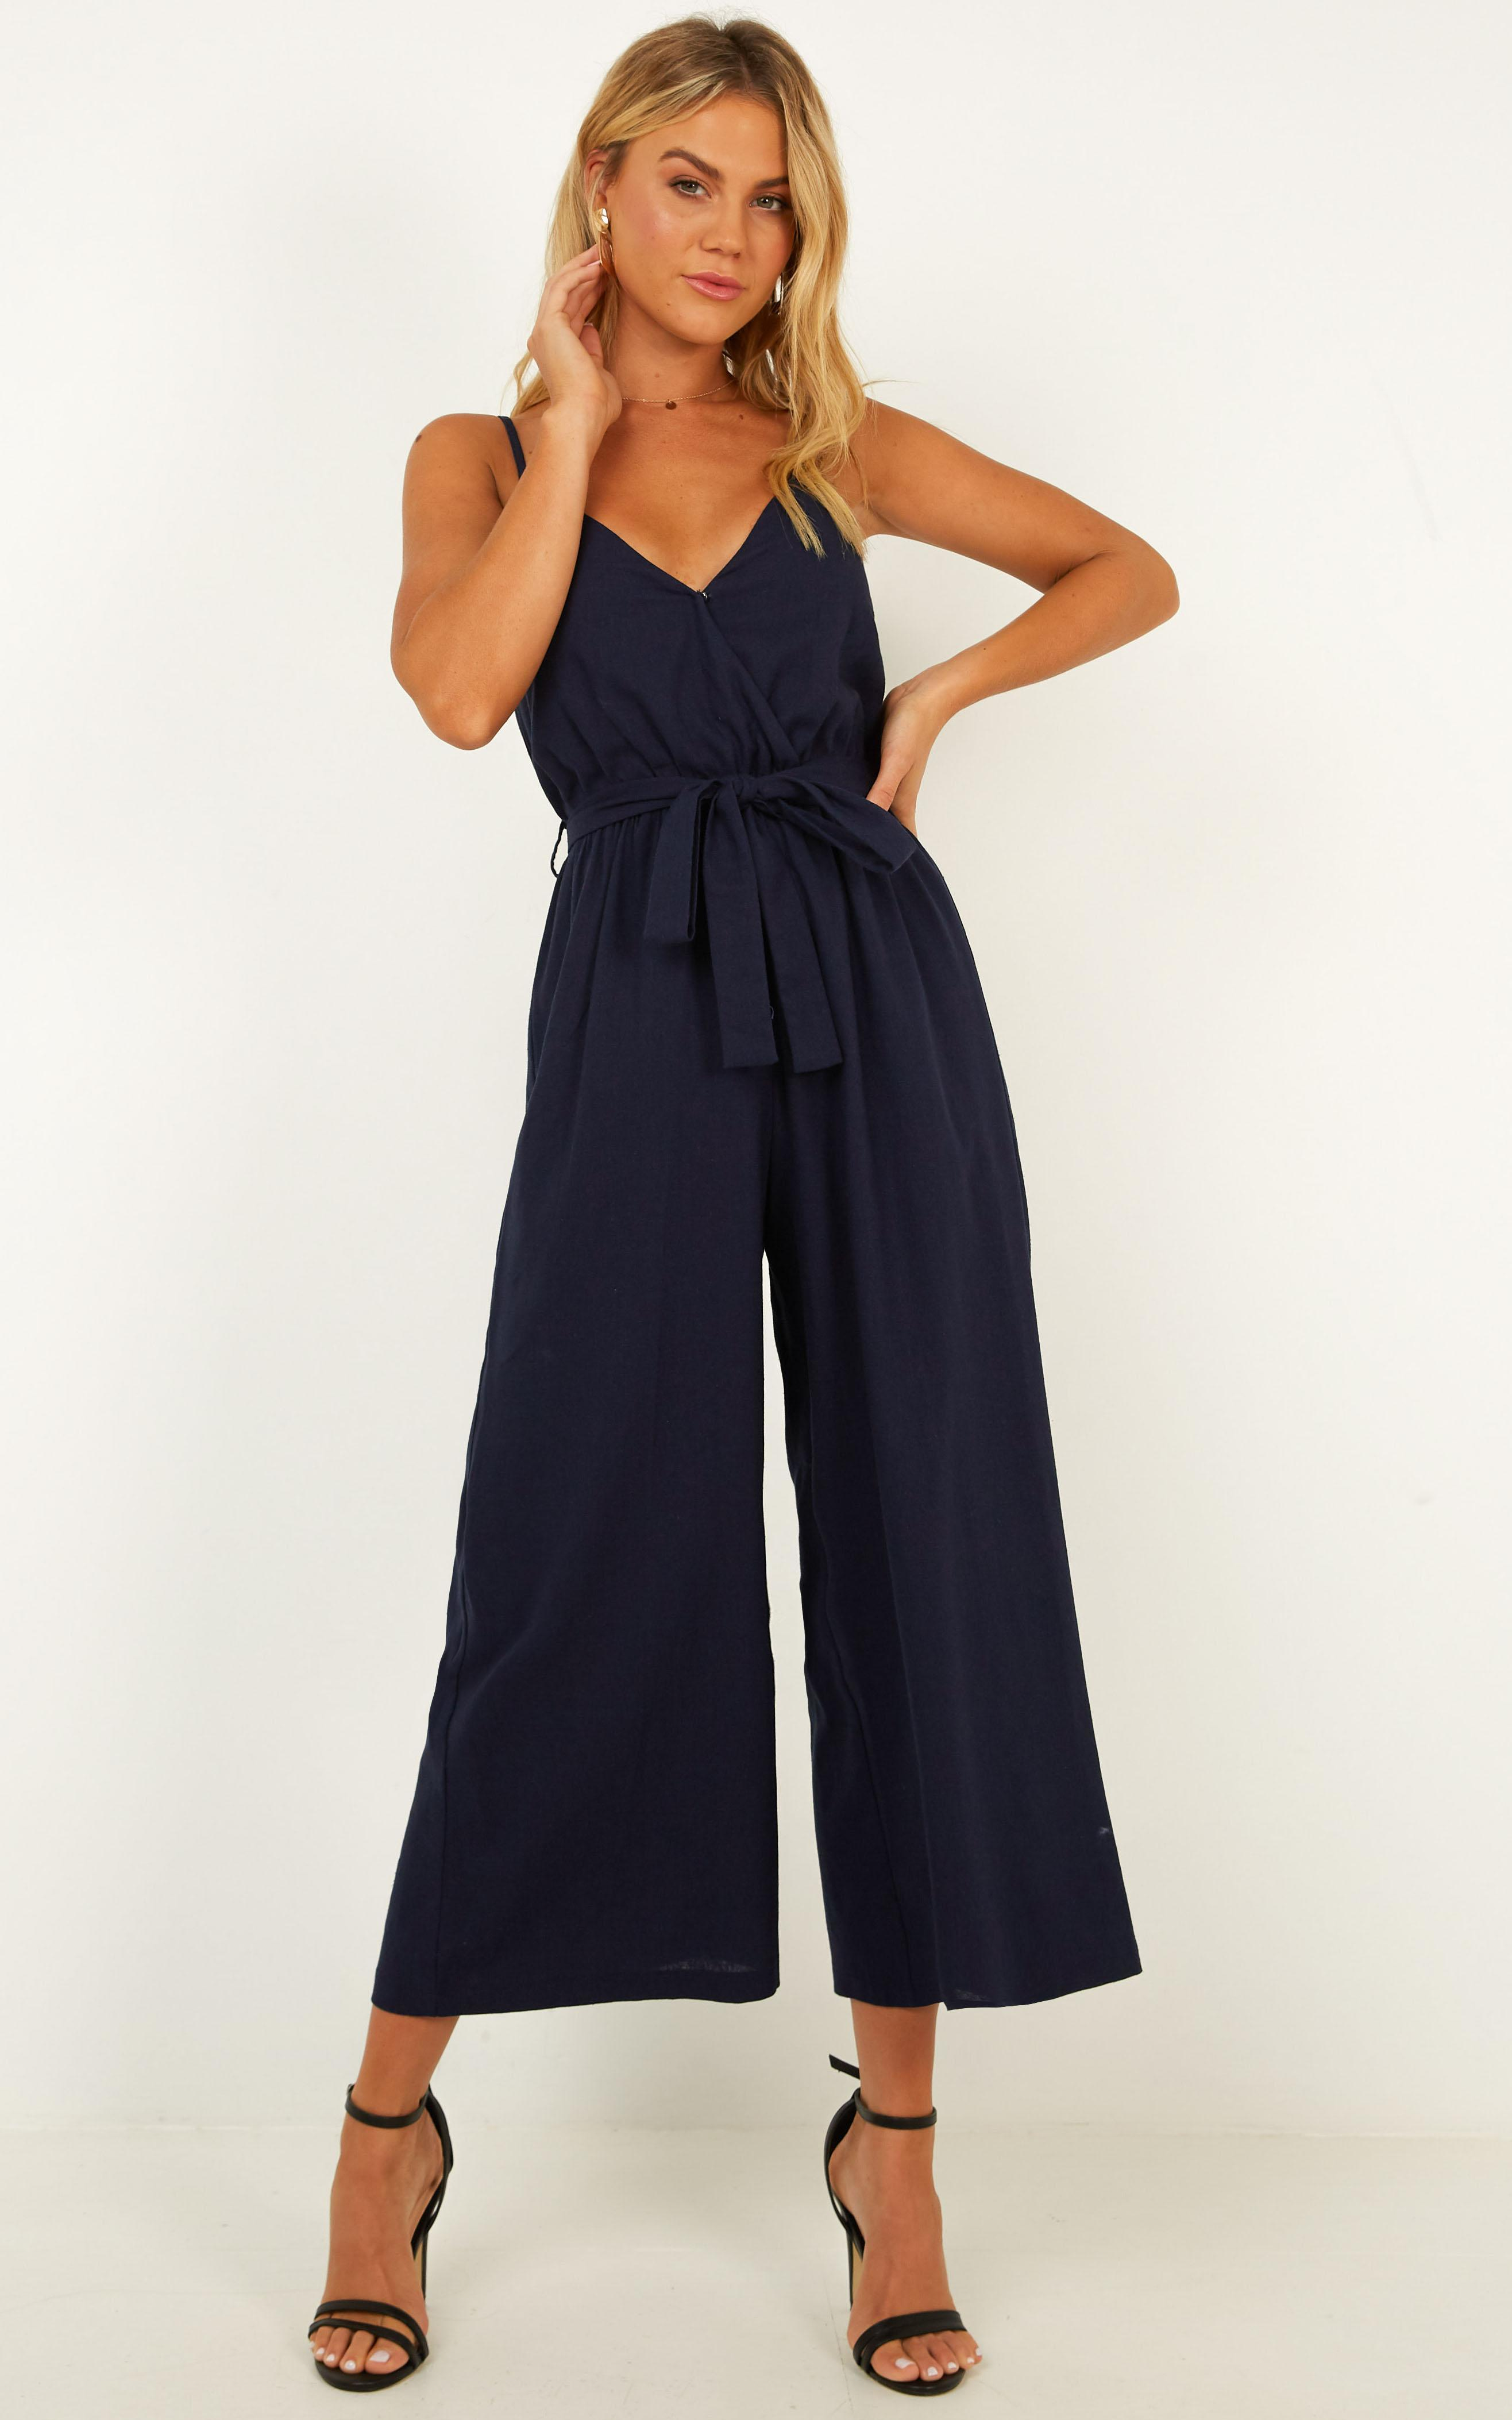 Not About You Jumpsuit In navy linen - 12 (L), Navy, hi-res image number null